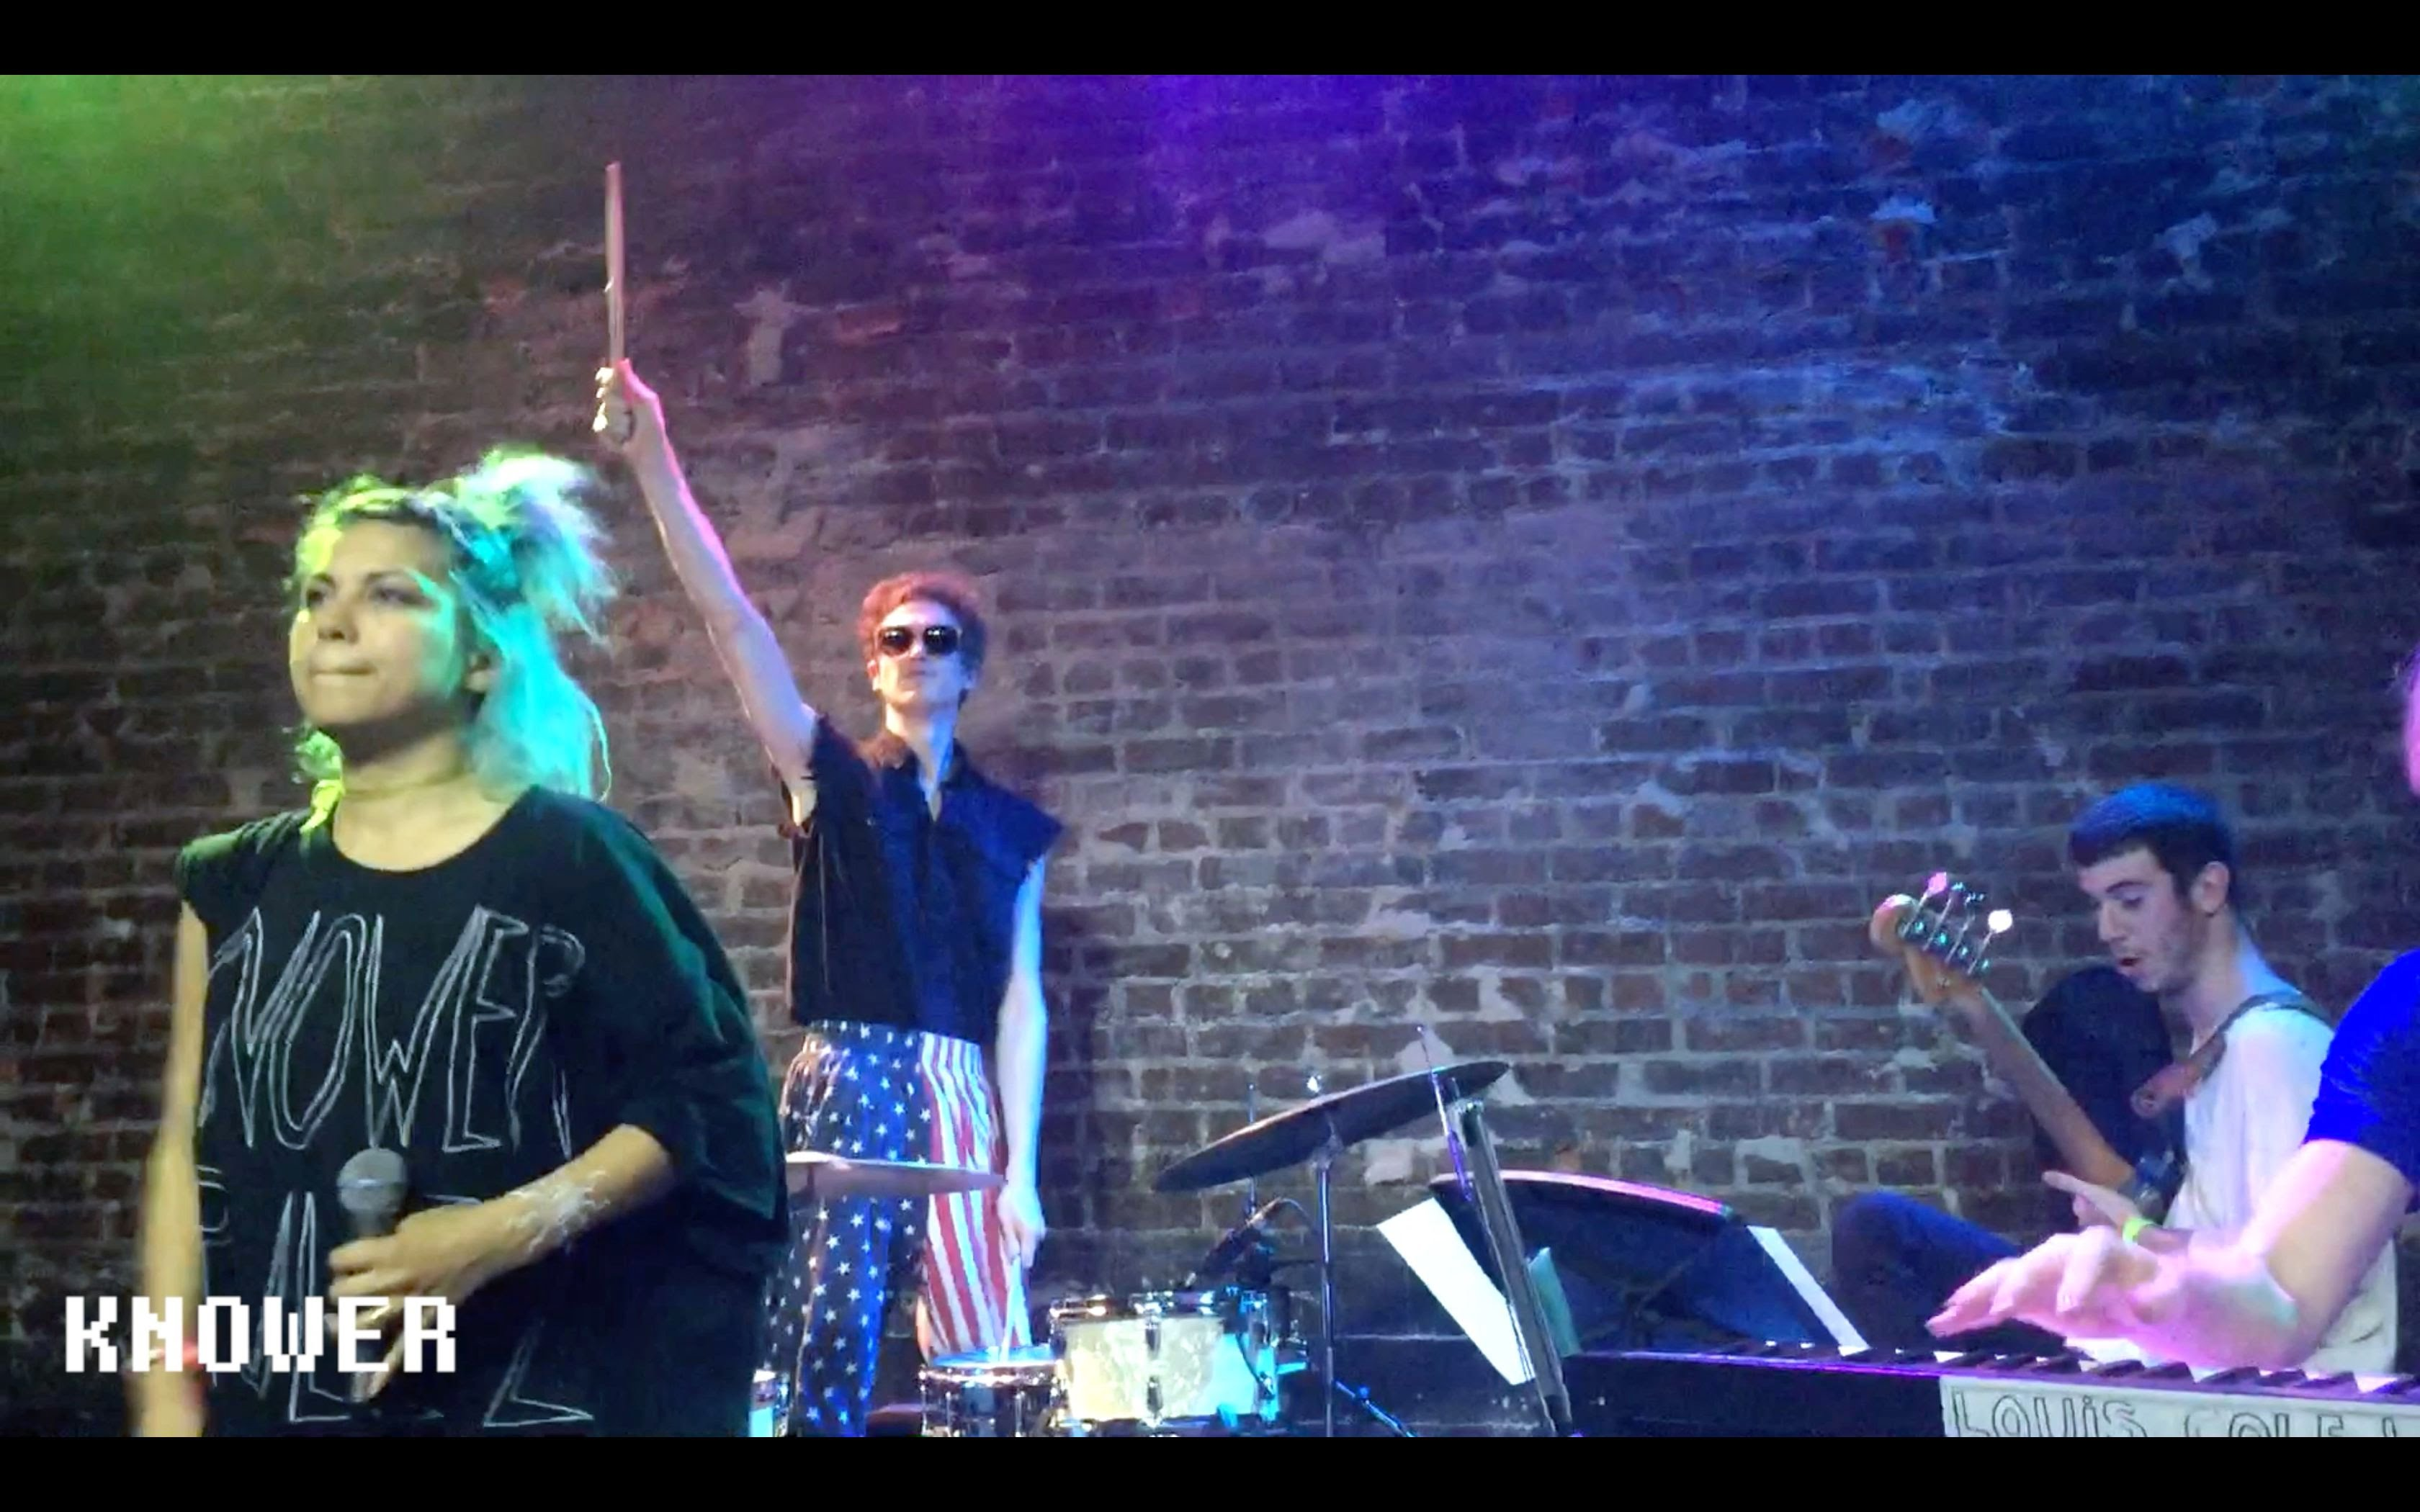 KNOWER announces a new batch of North American 'full band ' tour dates